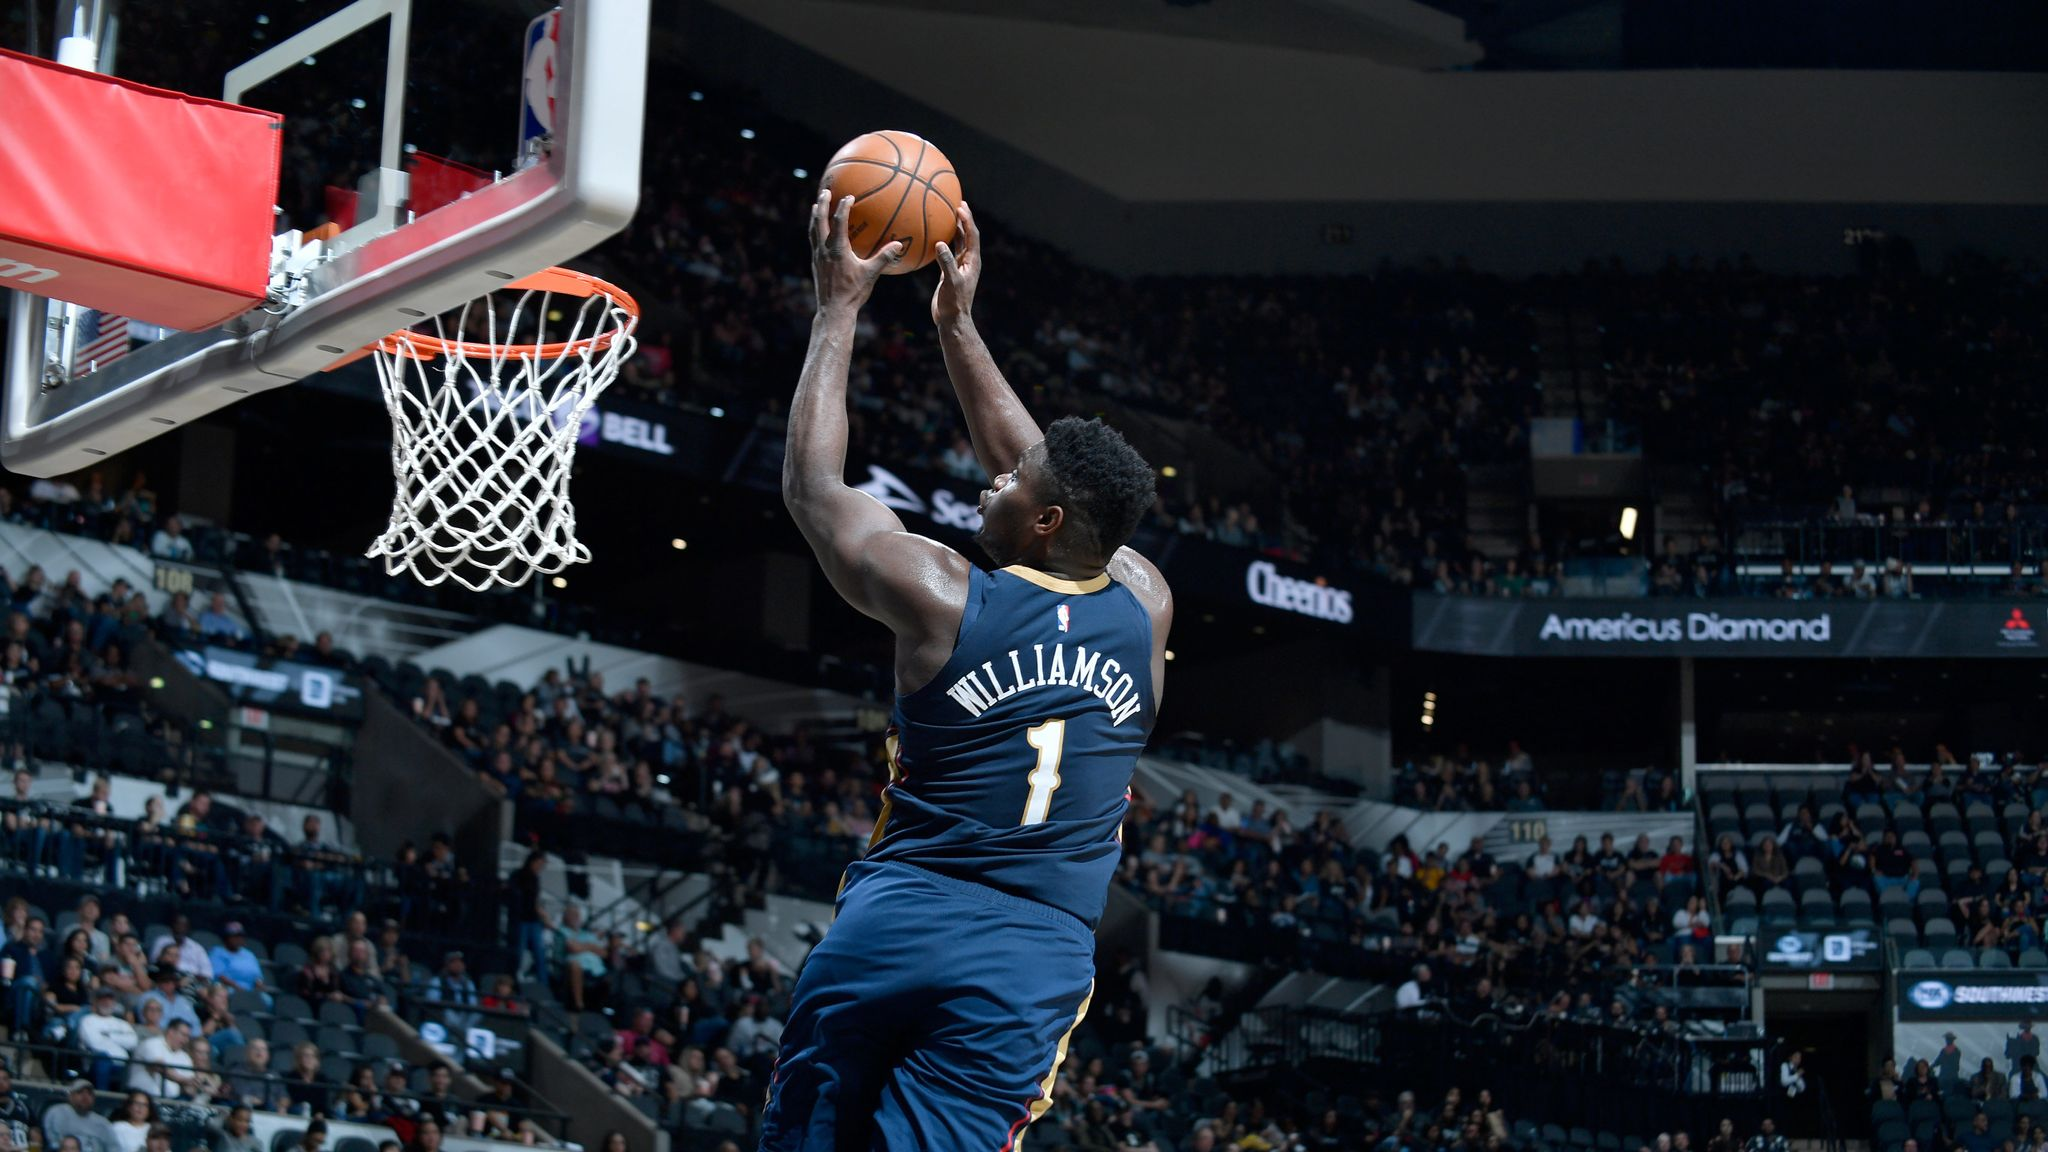 Zion Williamson completes alley-oop from long Lonzo Ball pass as Pelicans beat Spurs